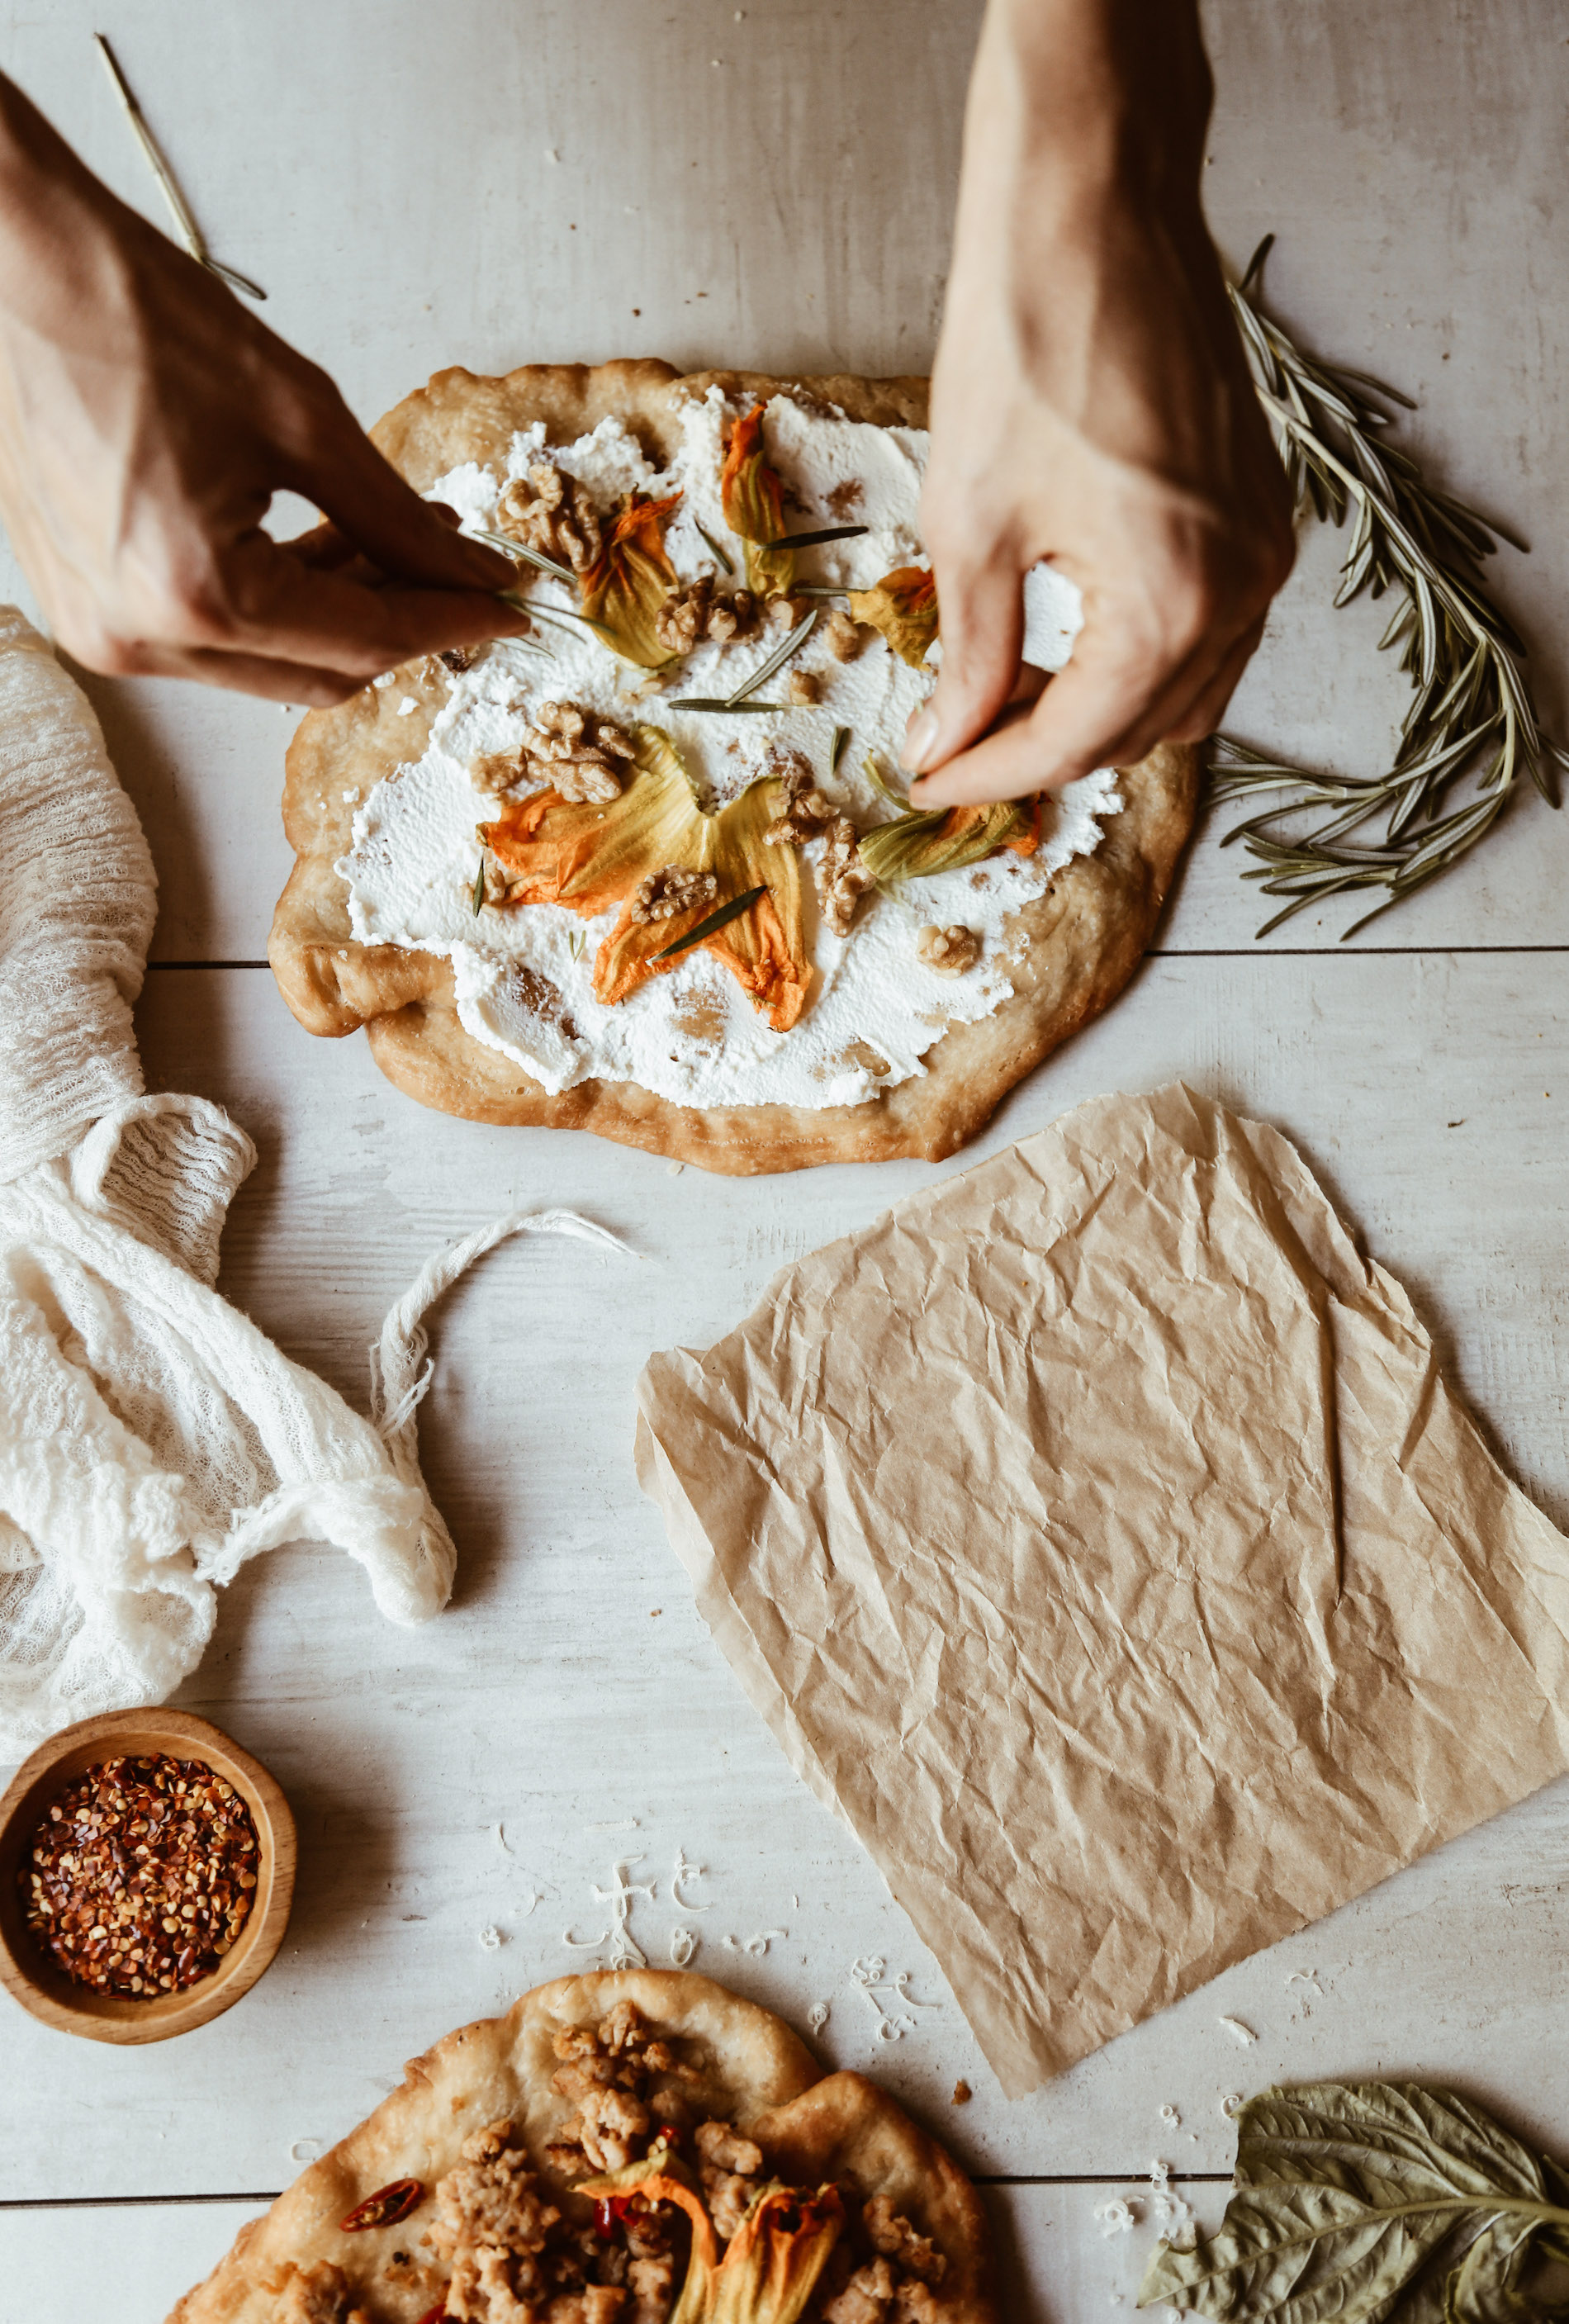 fried pizza with squash blossoms-7.jpg